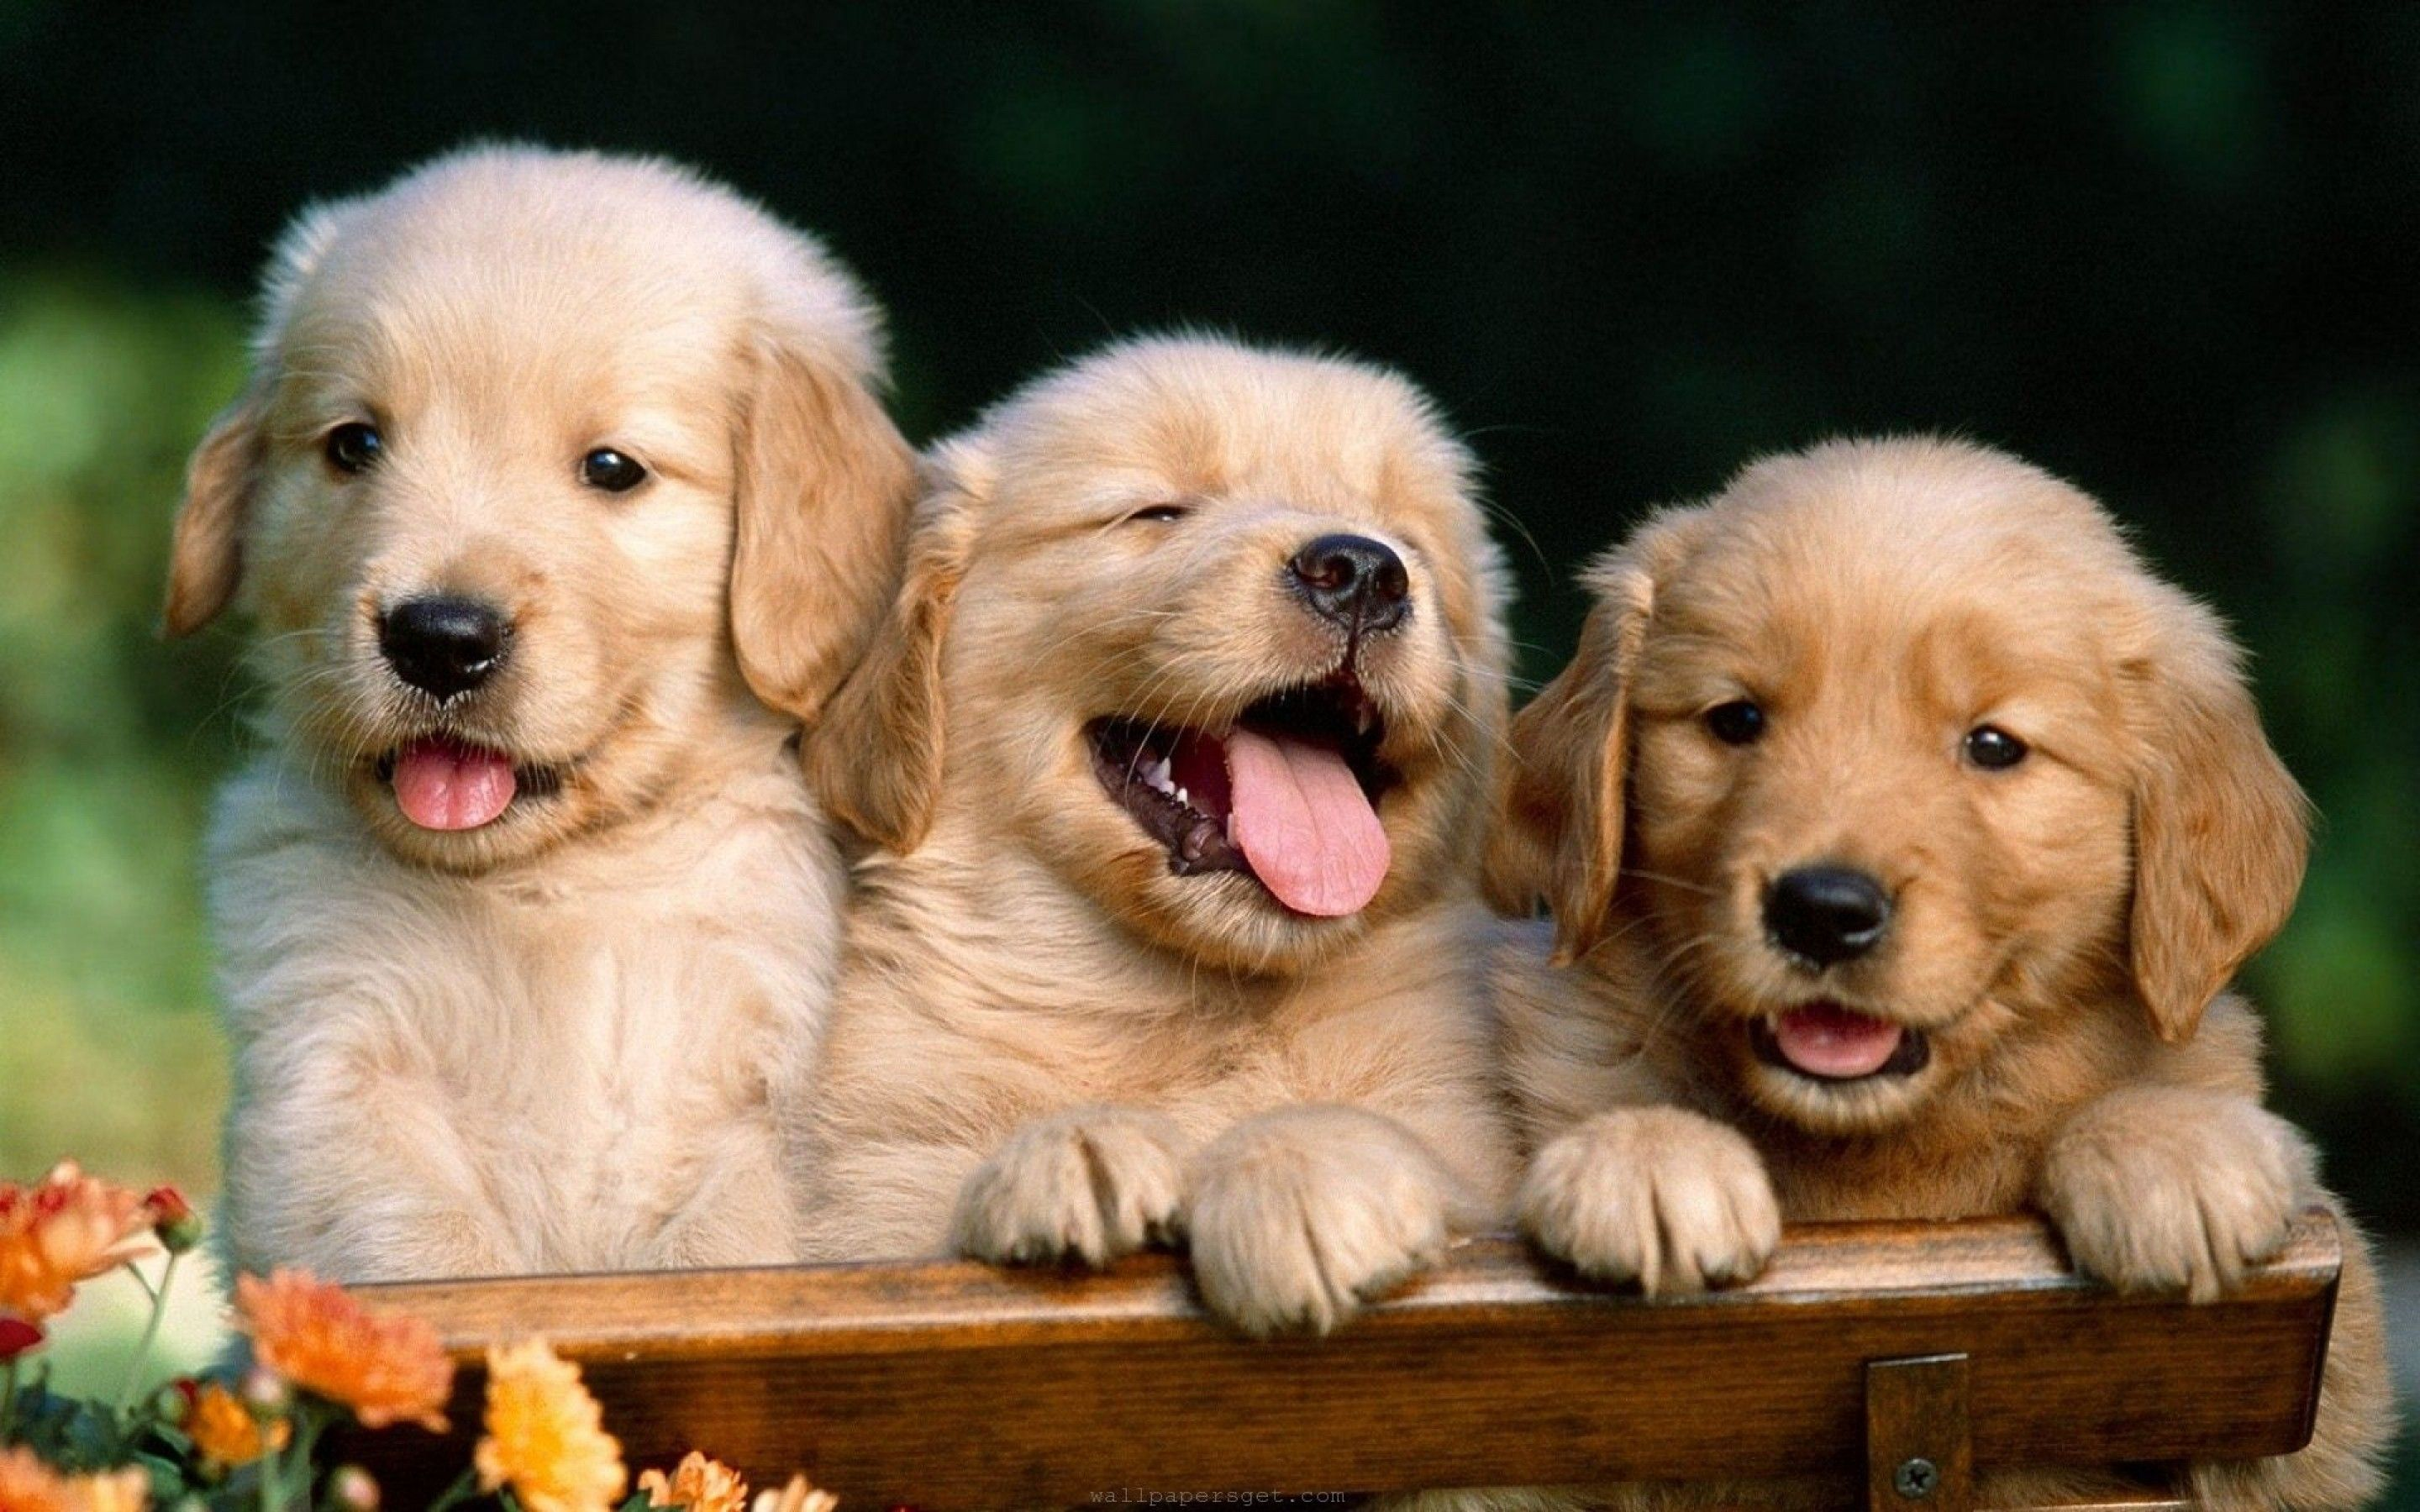 Puppy Babies Cute Dogs Hd Wallpaper